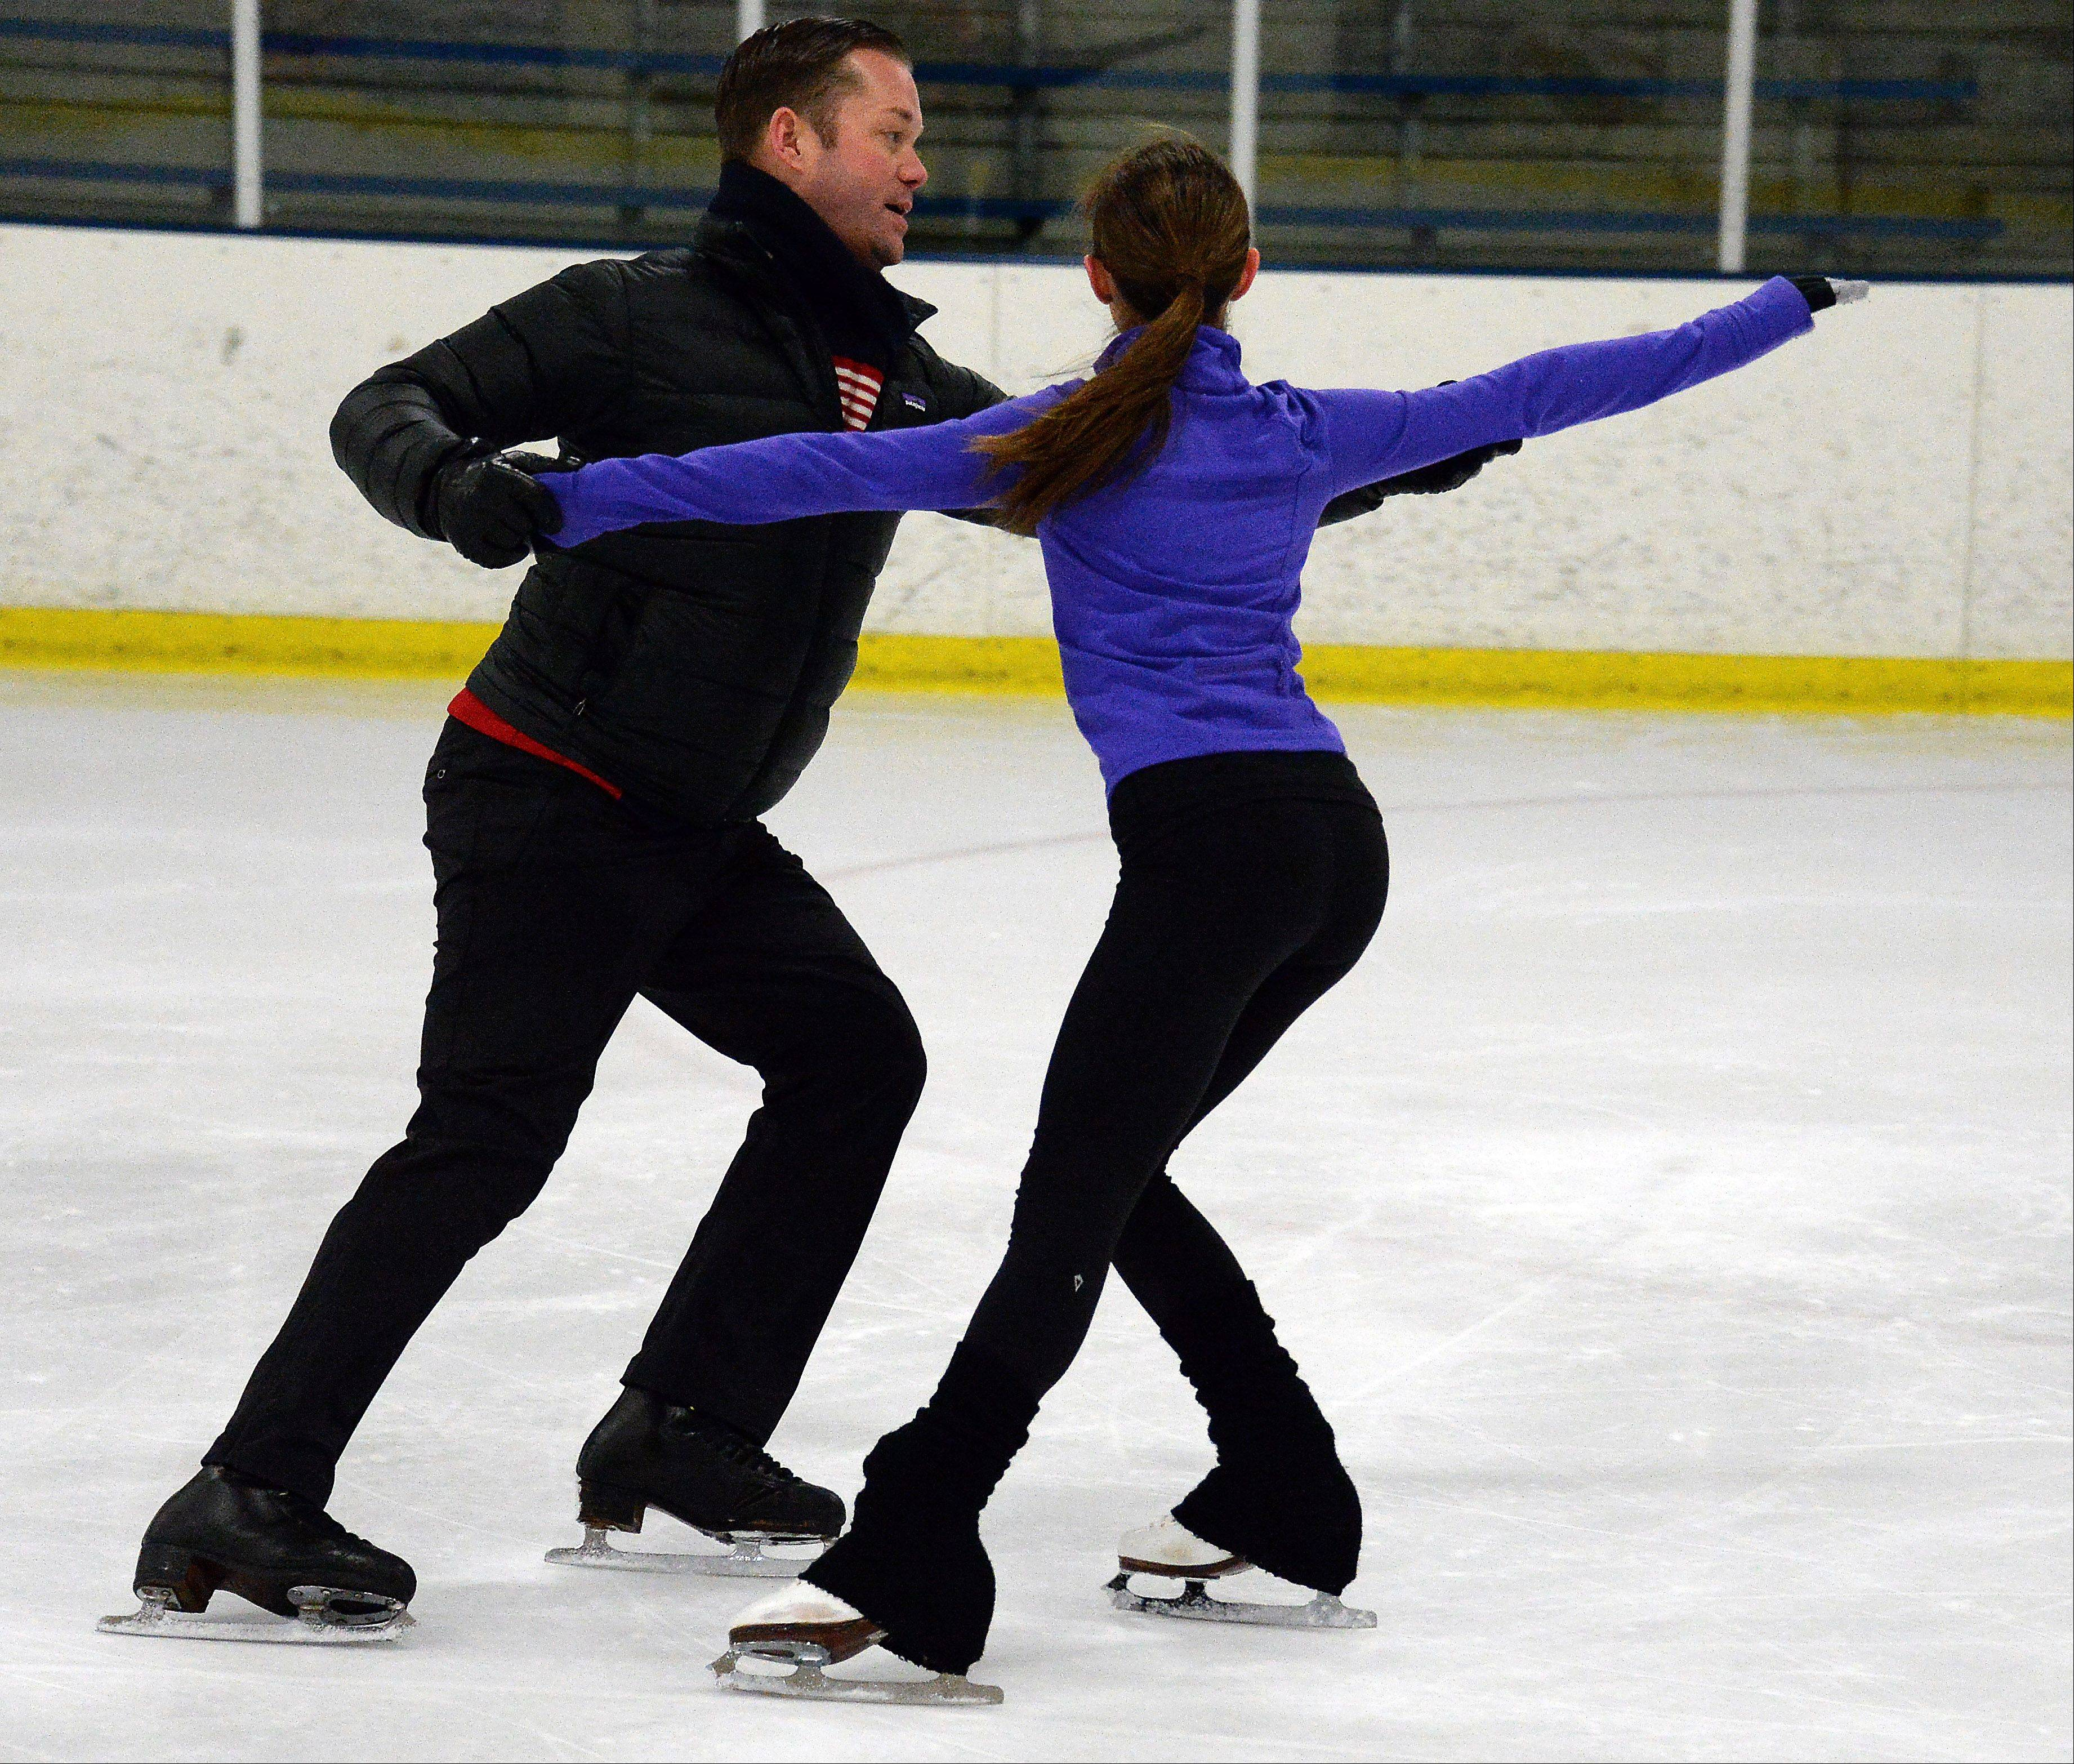 Scott Brown, a choreographer and coach for figure skater Gracie Gold, works with Megan Fee, 13, of Geneva last month at Twin Rinks in Buffalo Grove.